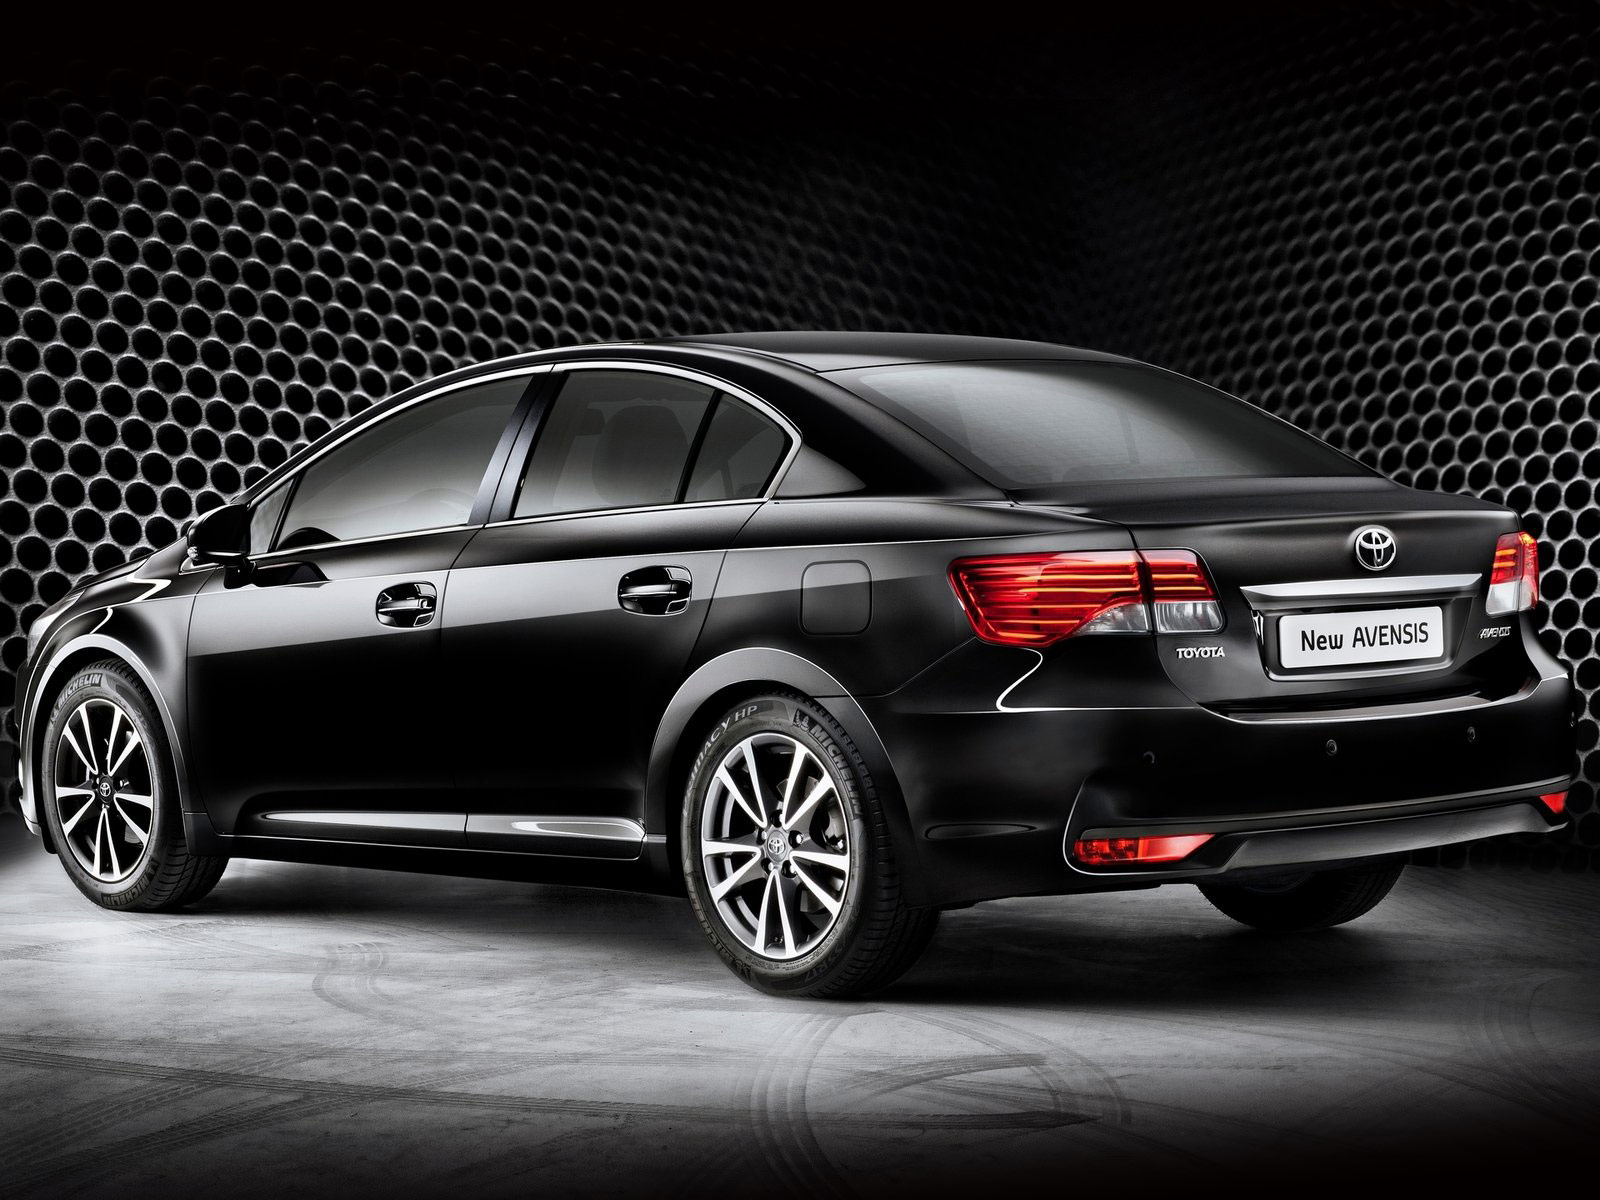 Toyota Avensis Japanese Car Wallpapers